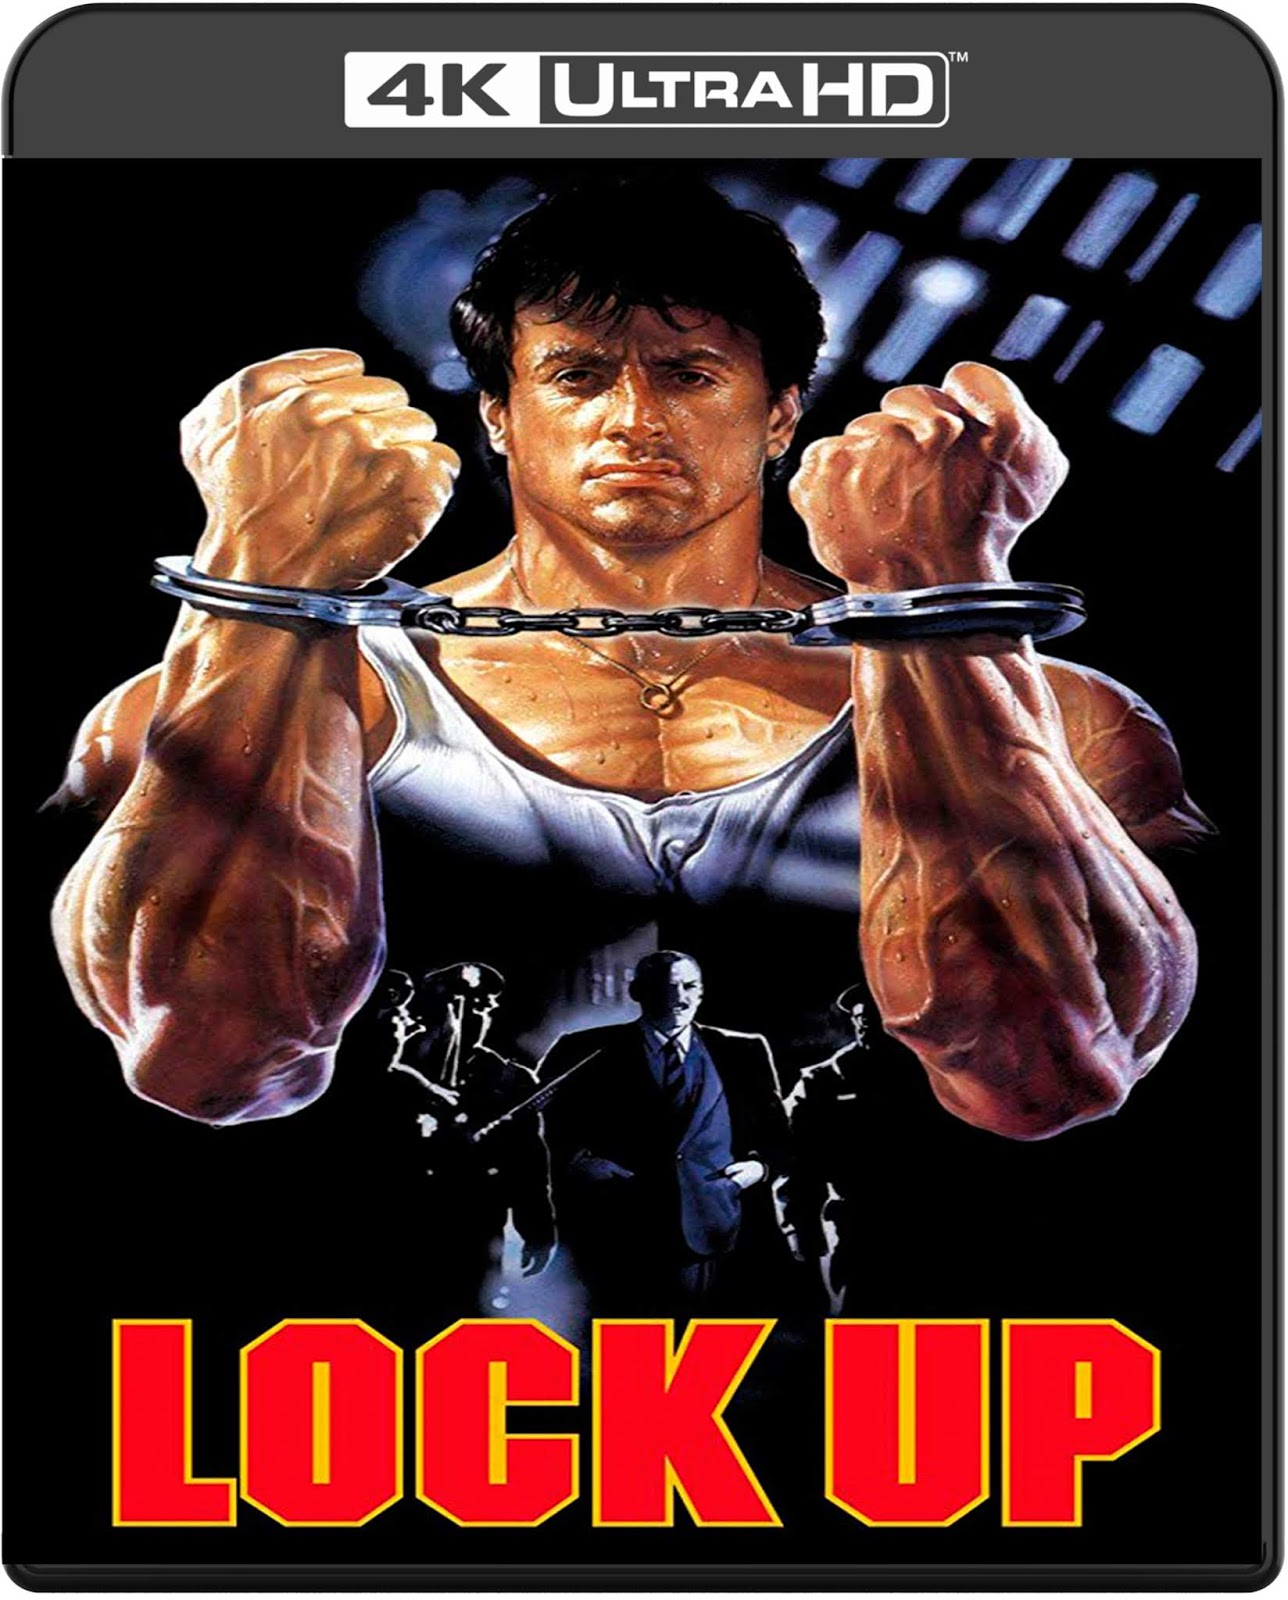 Lock Up [1989] [UHD] [2160p] [Latino]